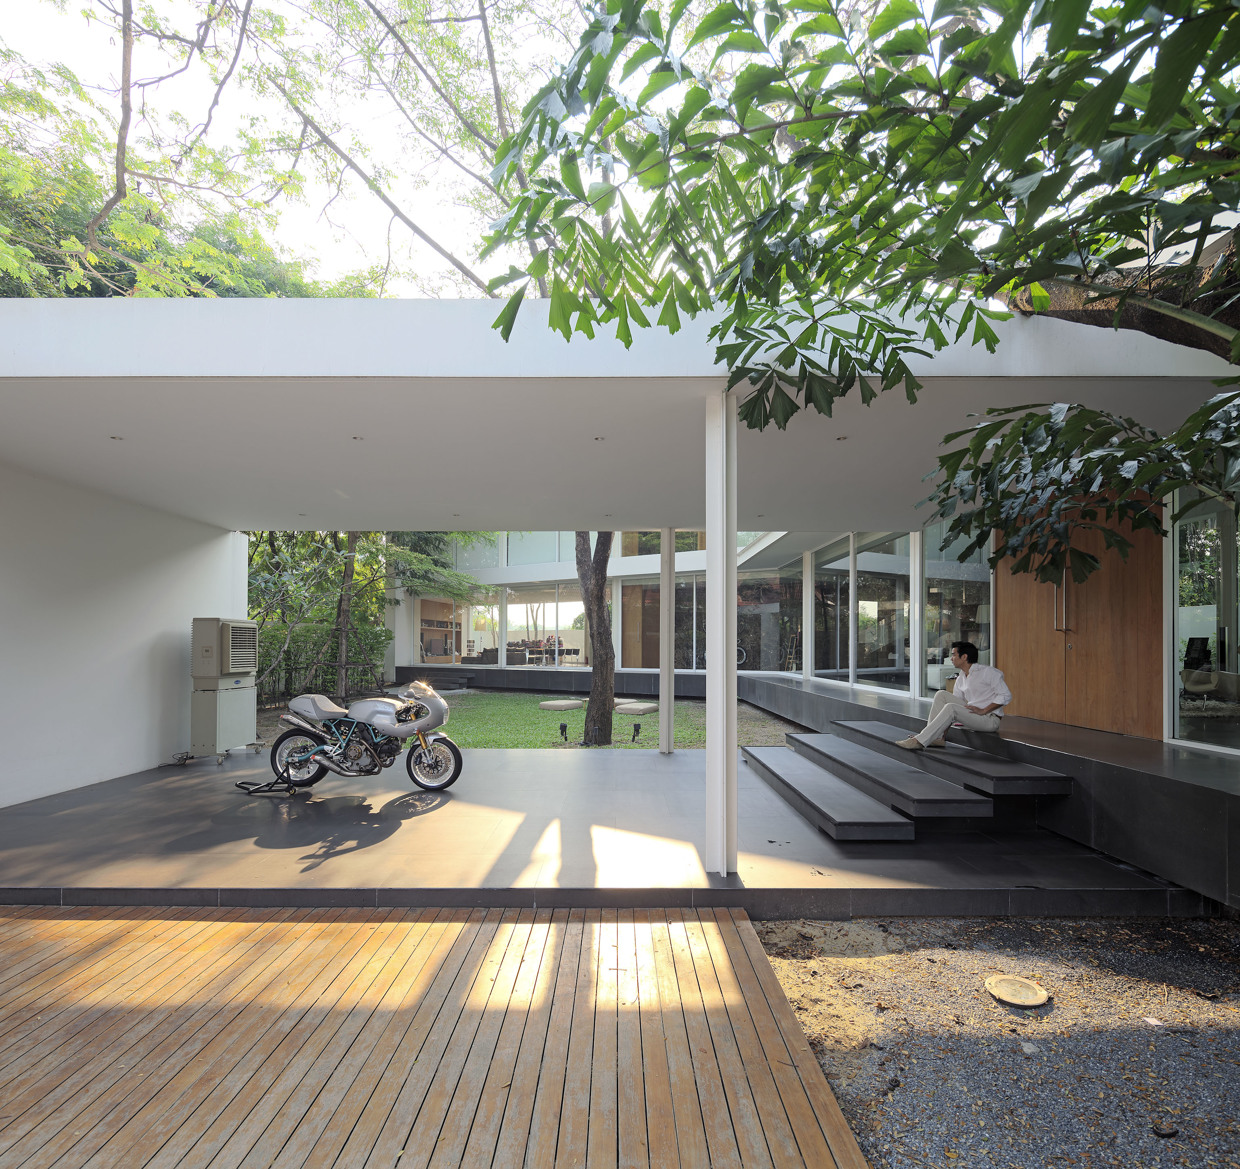 Home Inspiration: Modern Thai Home Inspiration